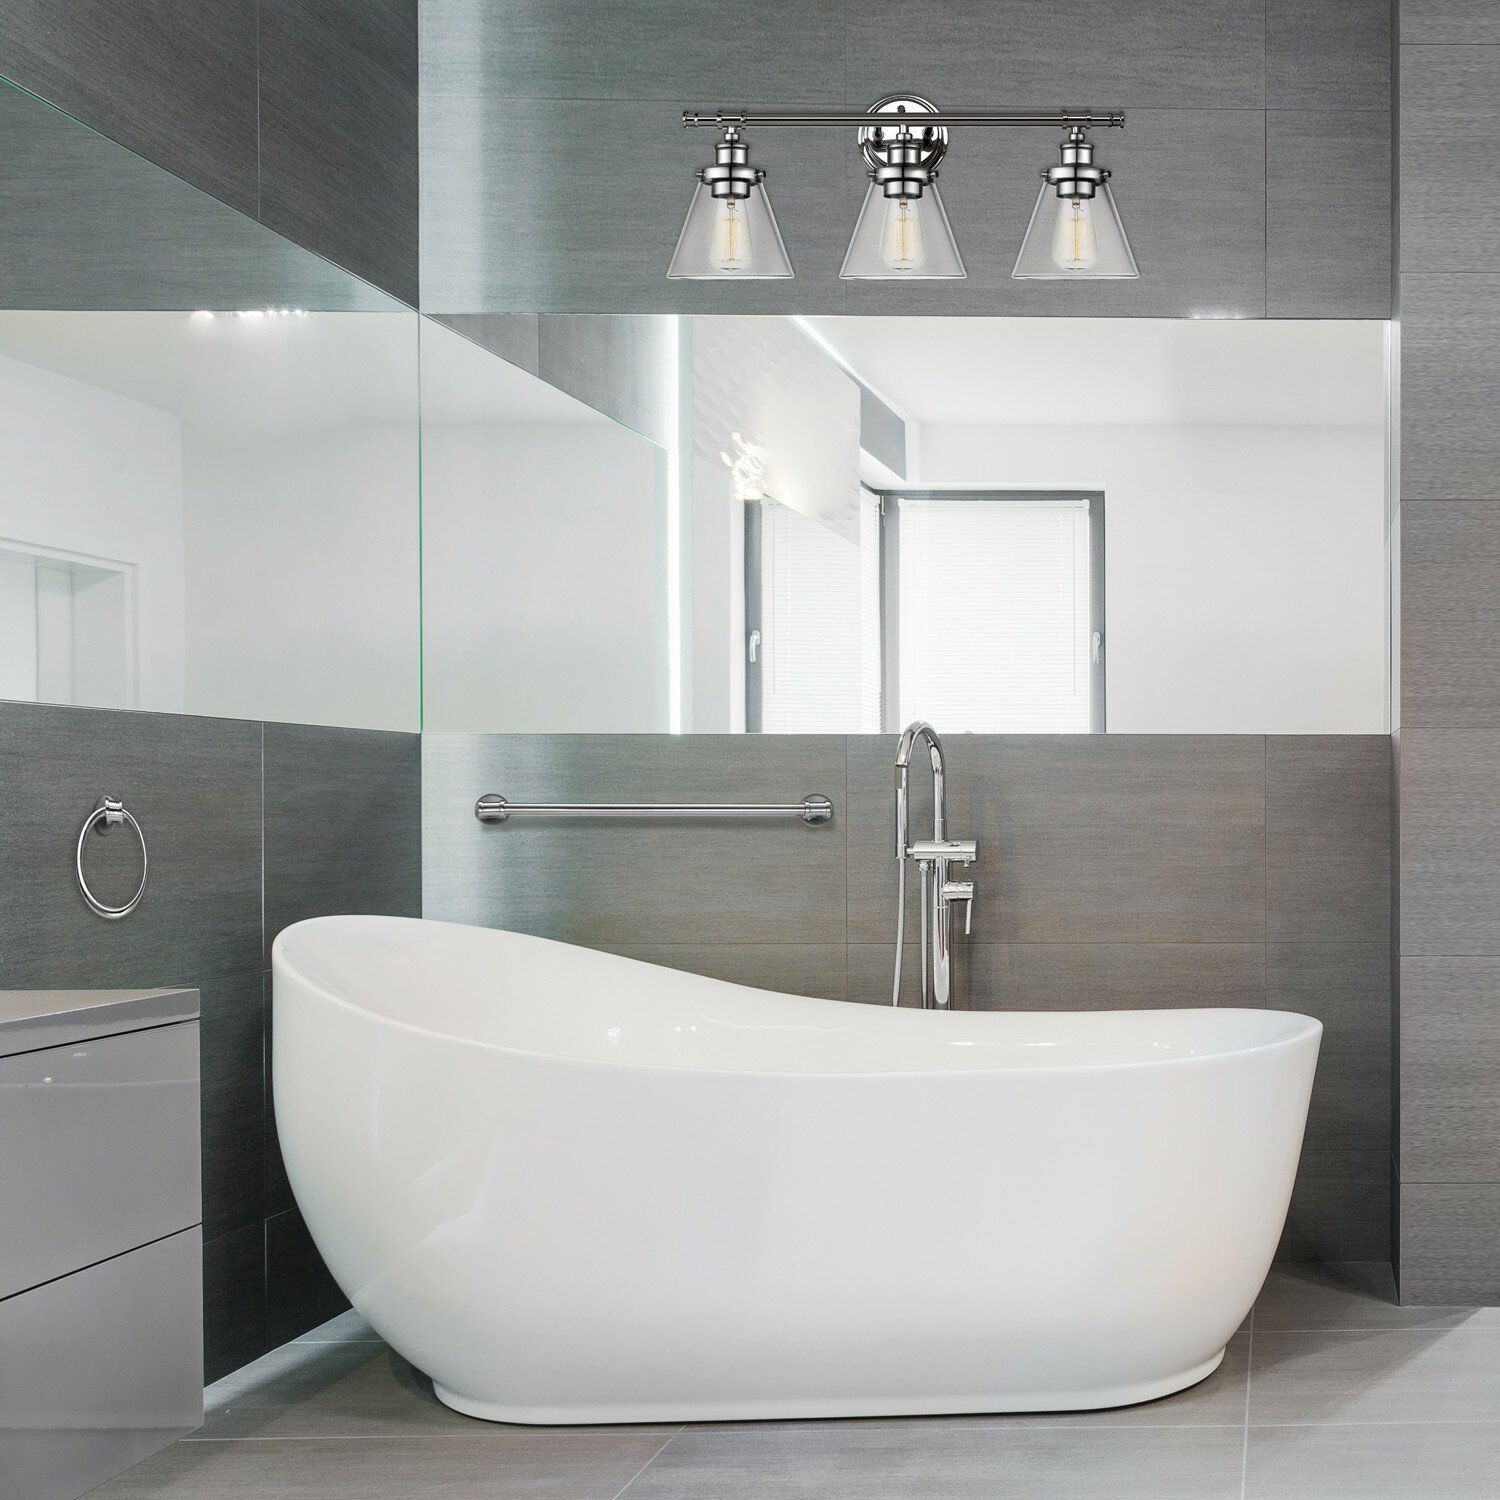 All in one bathroom - Parker All In One 3 Light Vanity Light